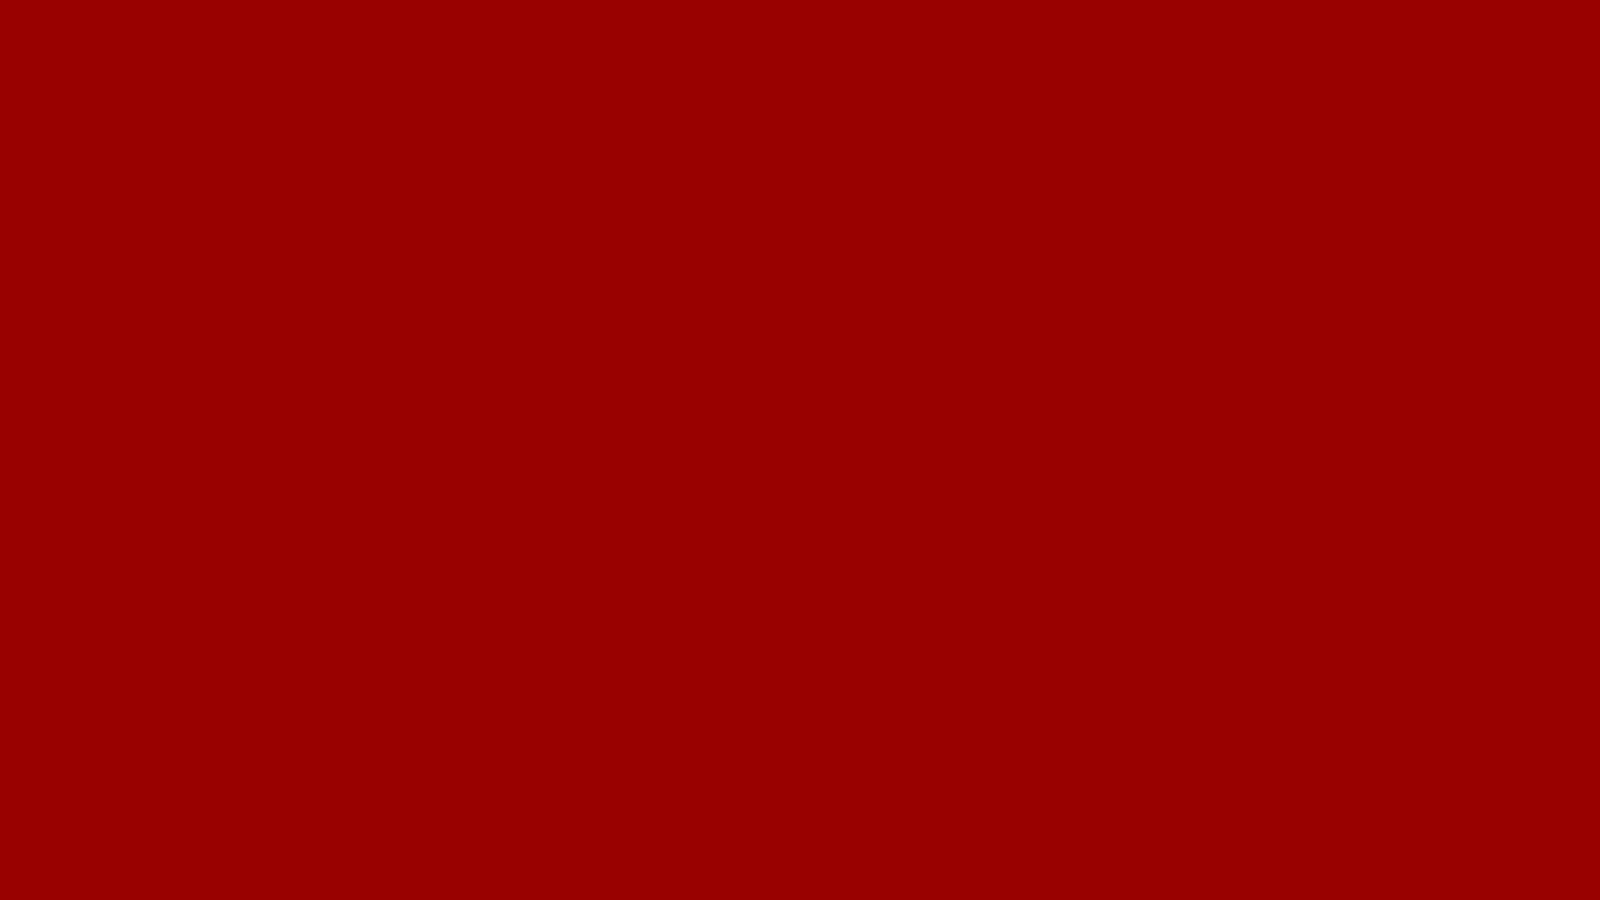 1600x900 OU Crimson Red Solid Color Background